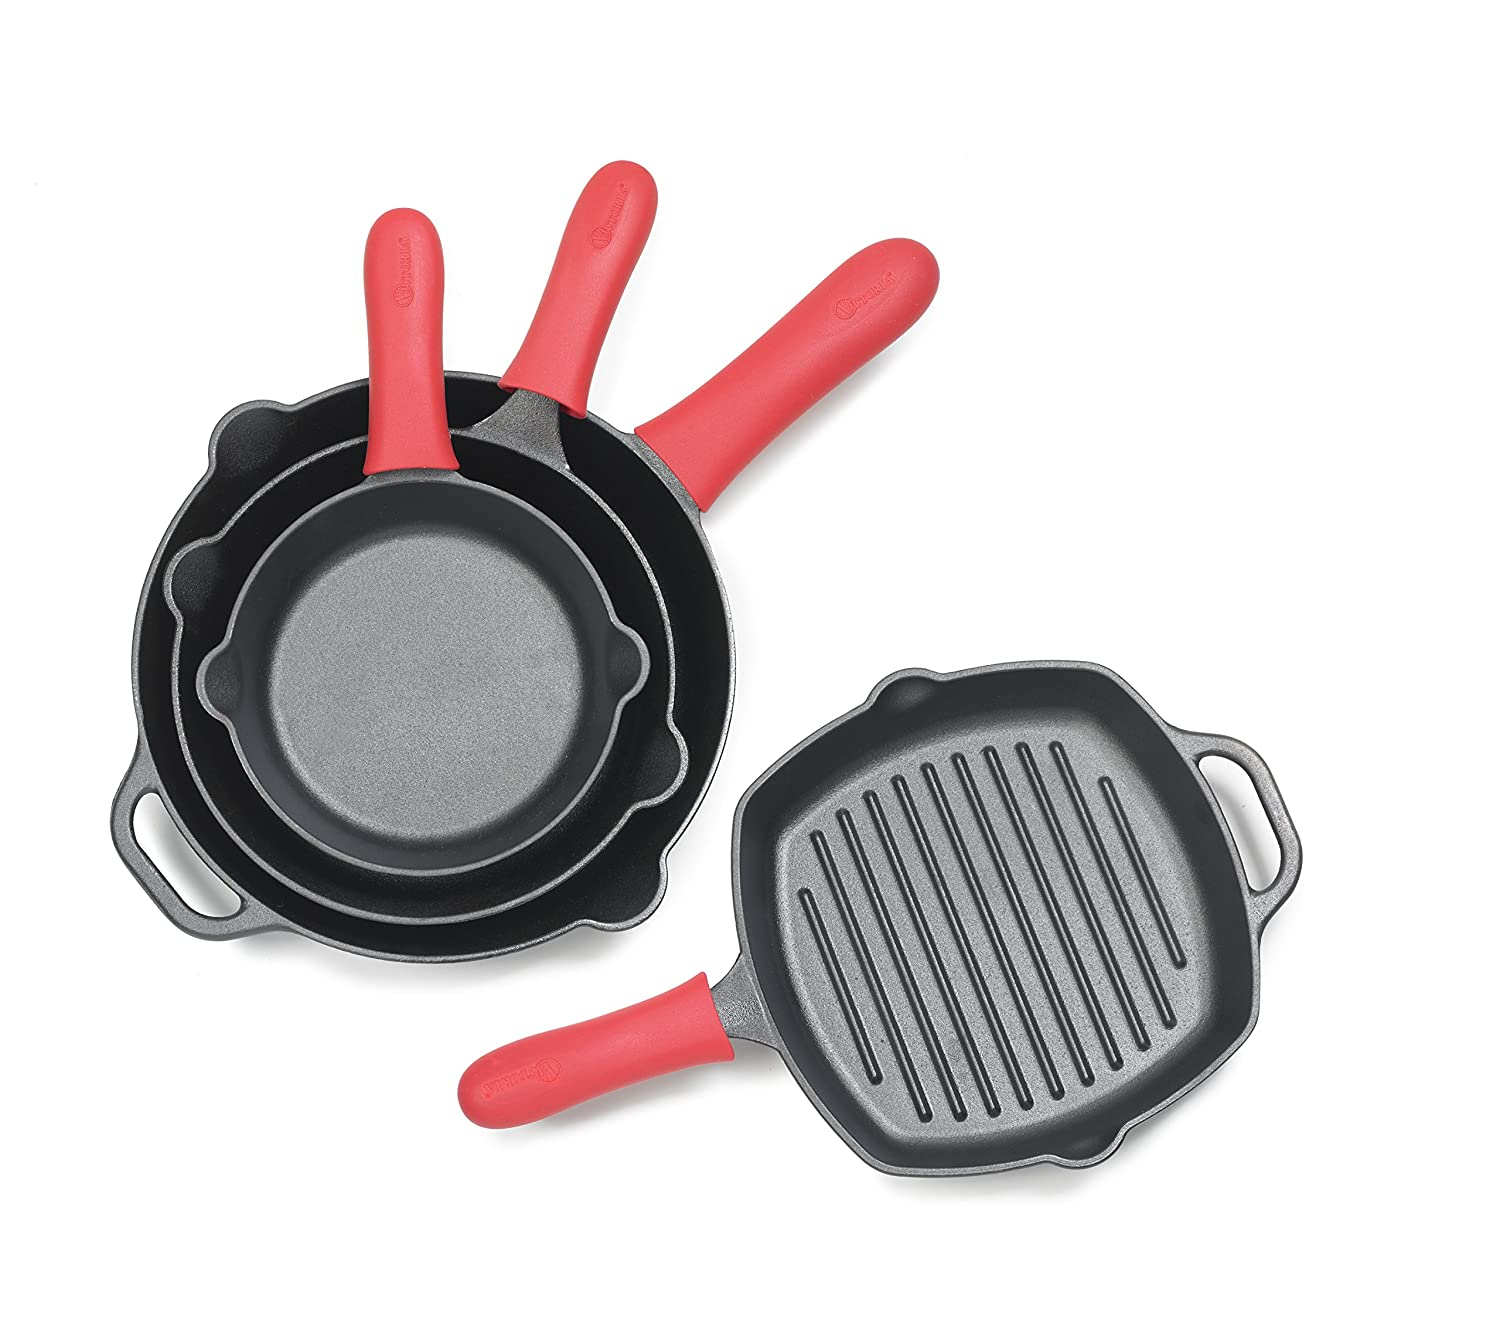 Victoria Silicone Handle Holder for Victoria Skillets GDL-186 SKL-200 SKL-210 SKL-218 and SKL-212, ACC-498, Large, Red